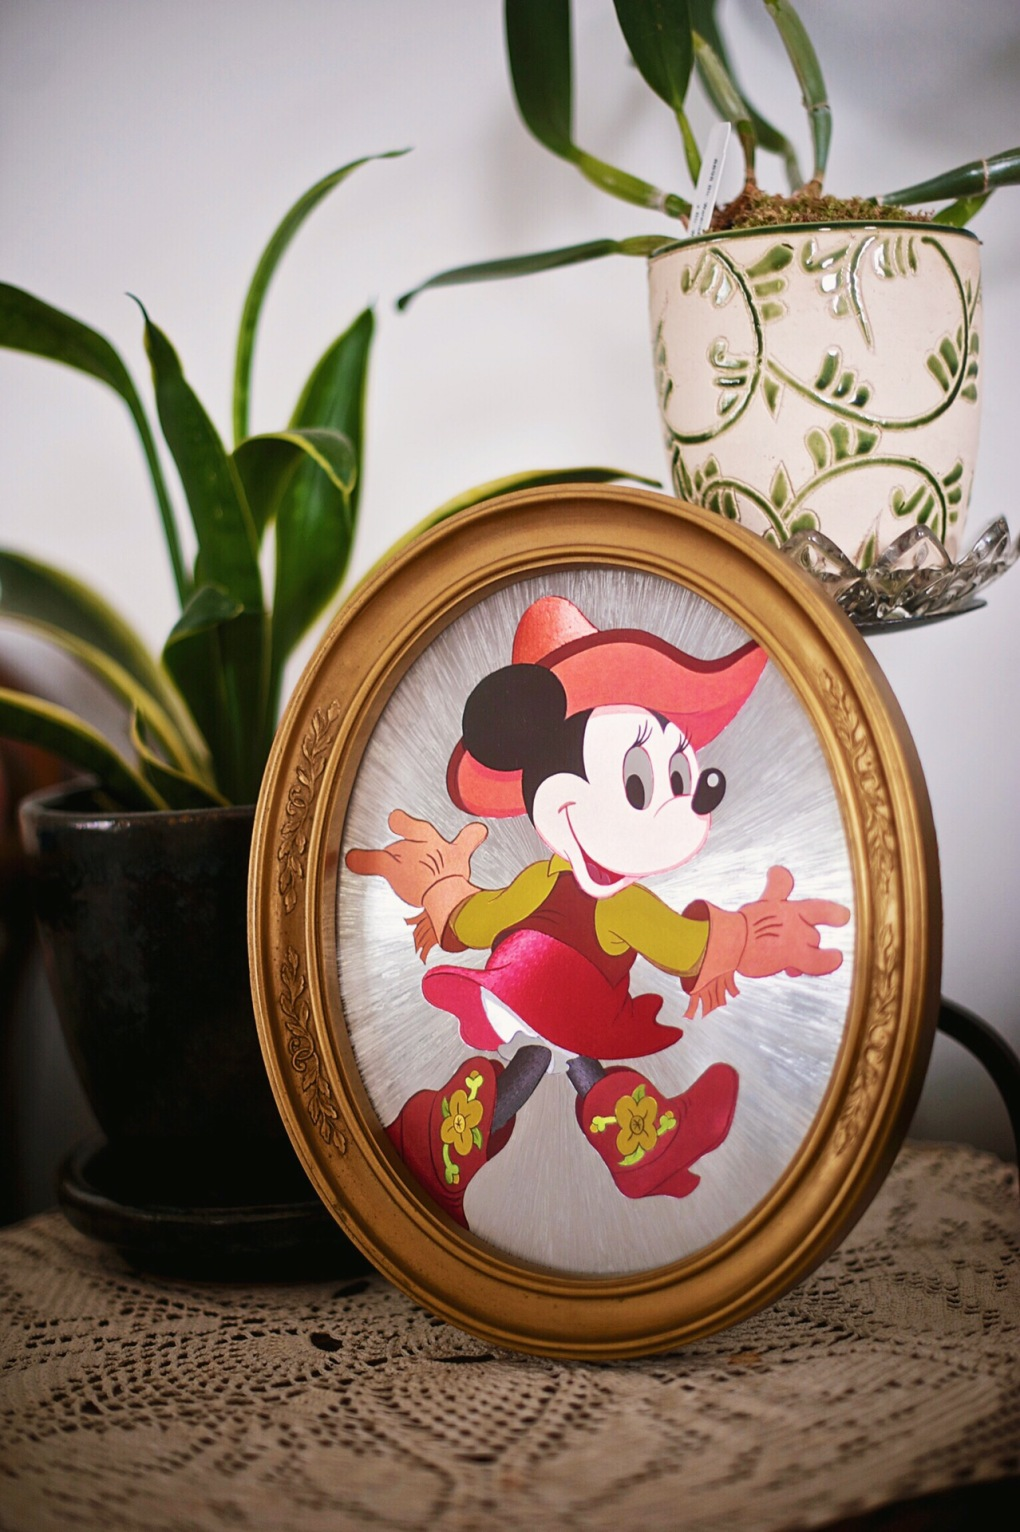 Vintage Minnie Mouse Foil Finish Print in Vintage Frame